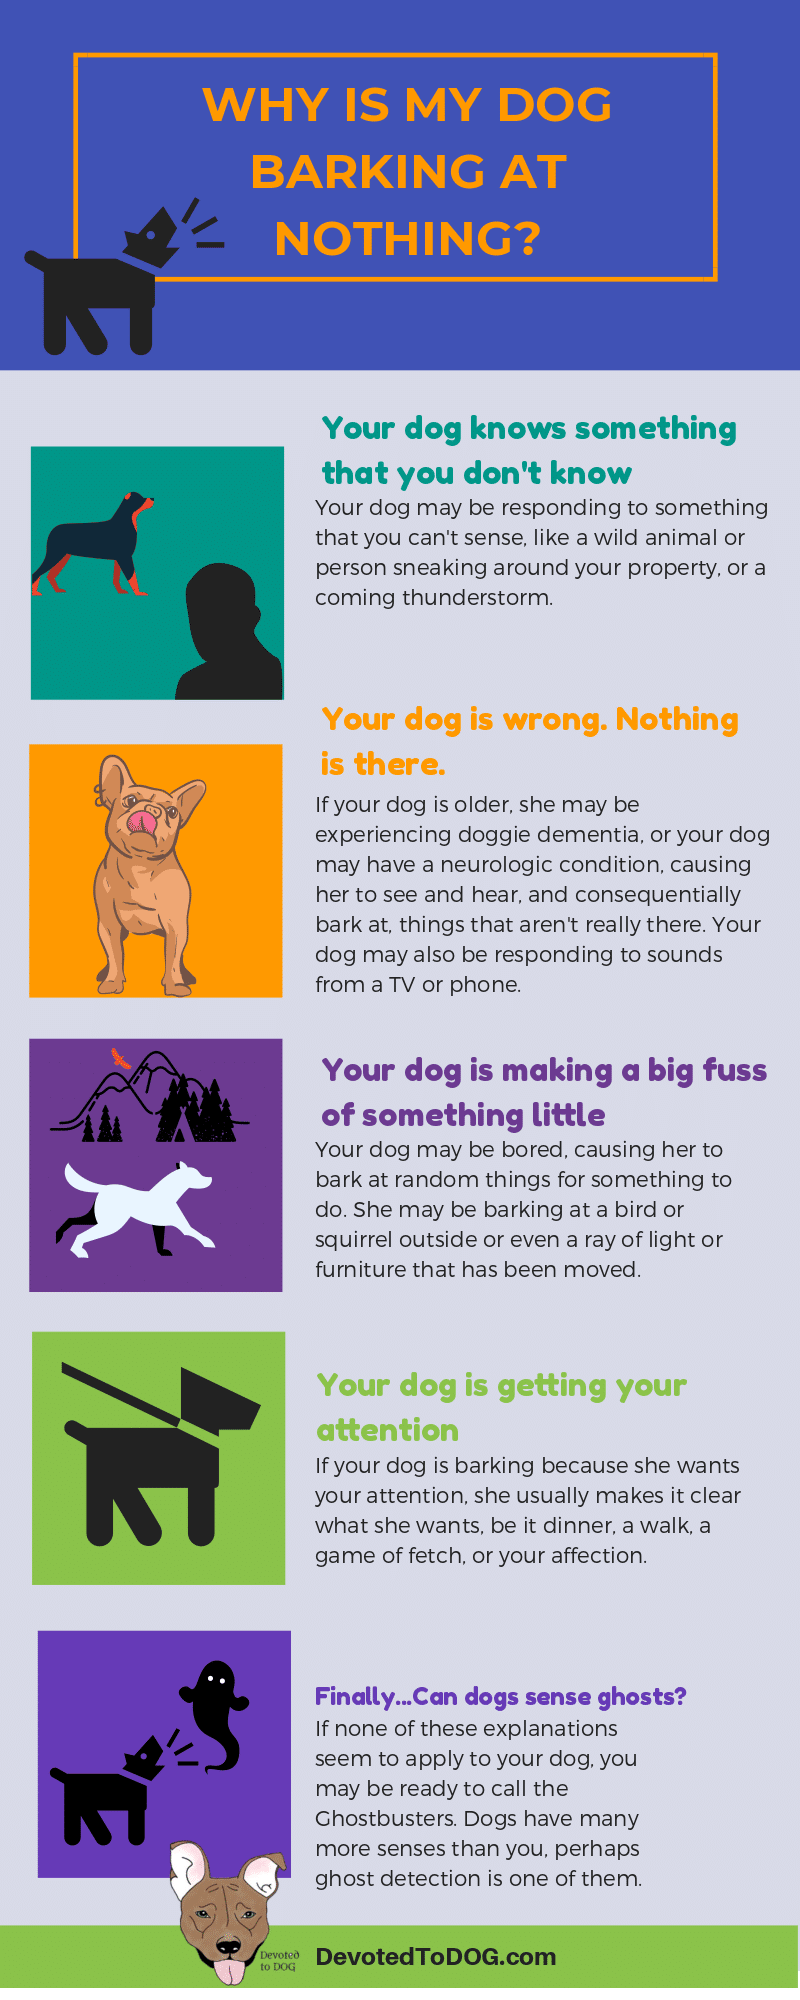 Why do Dogs Bark at Nothing?